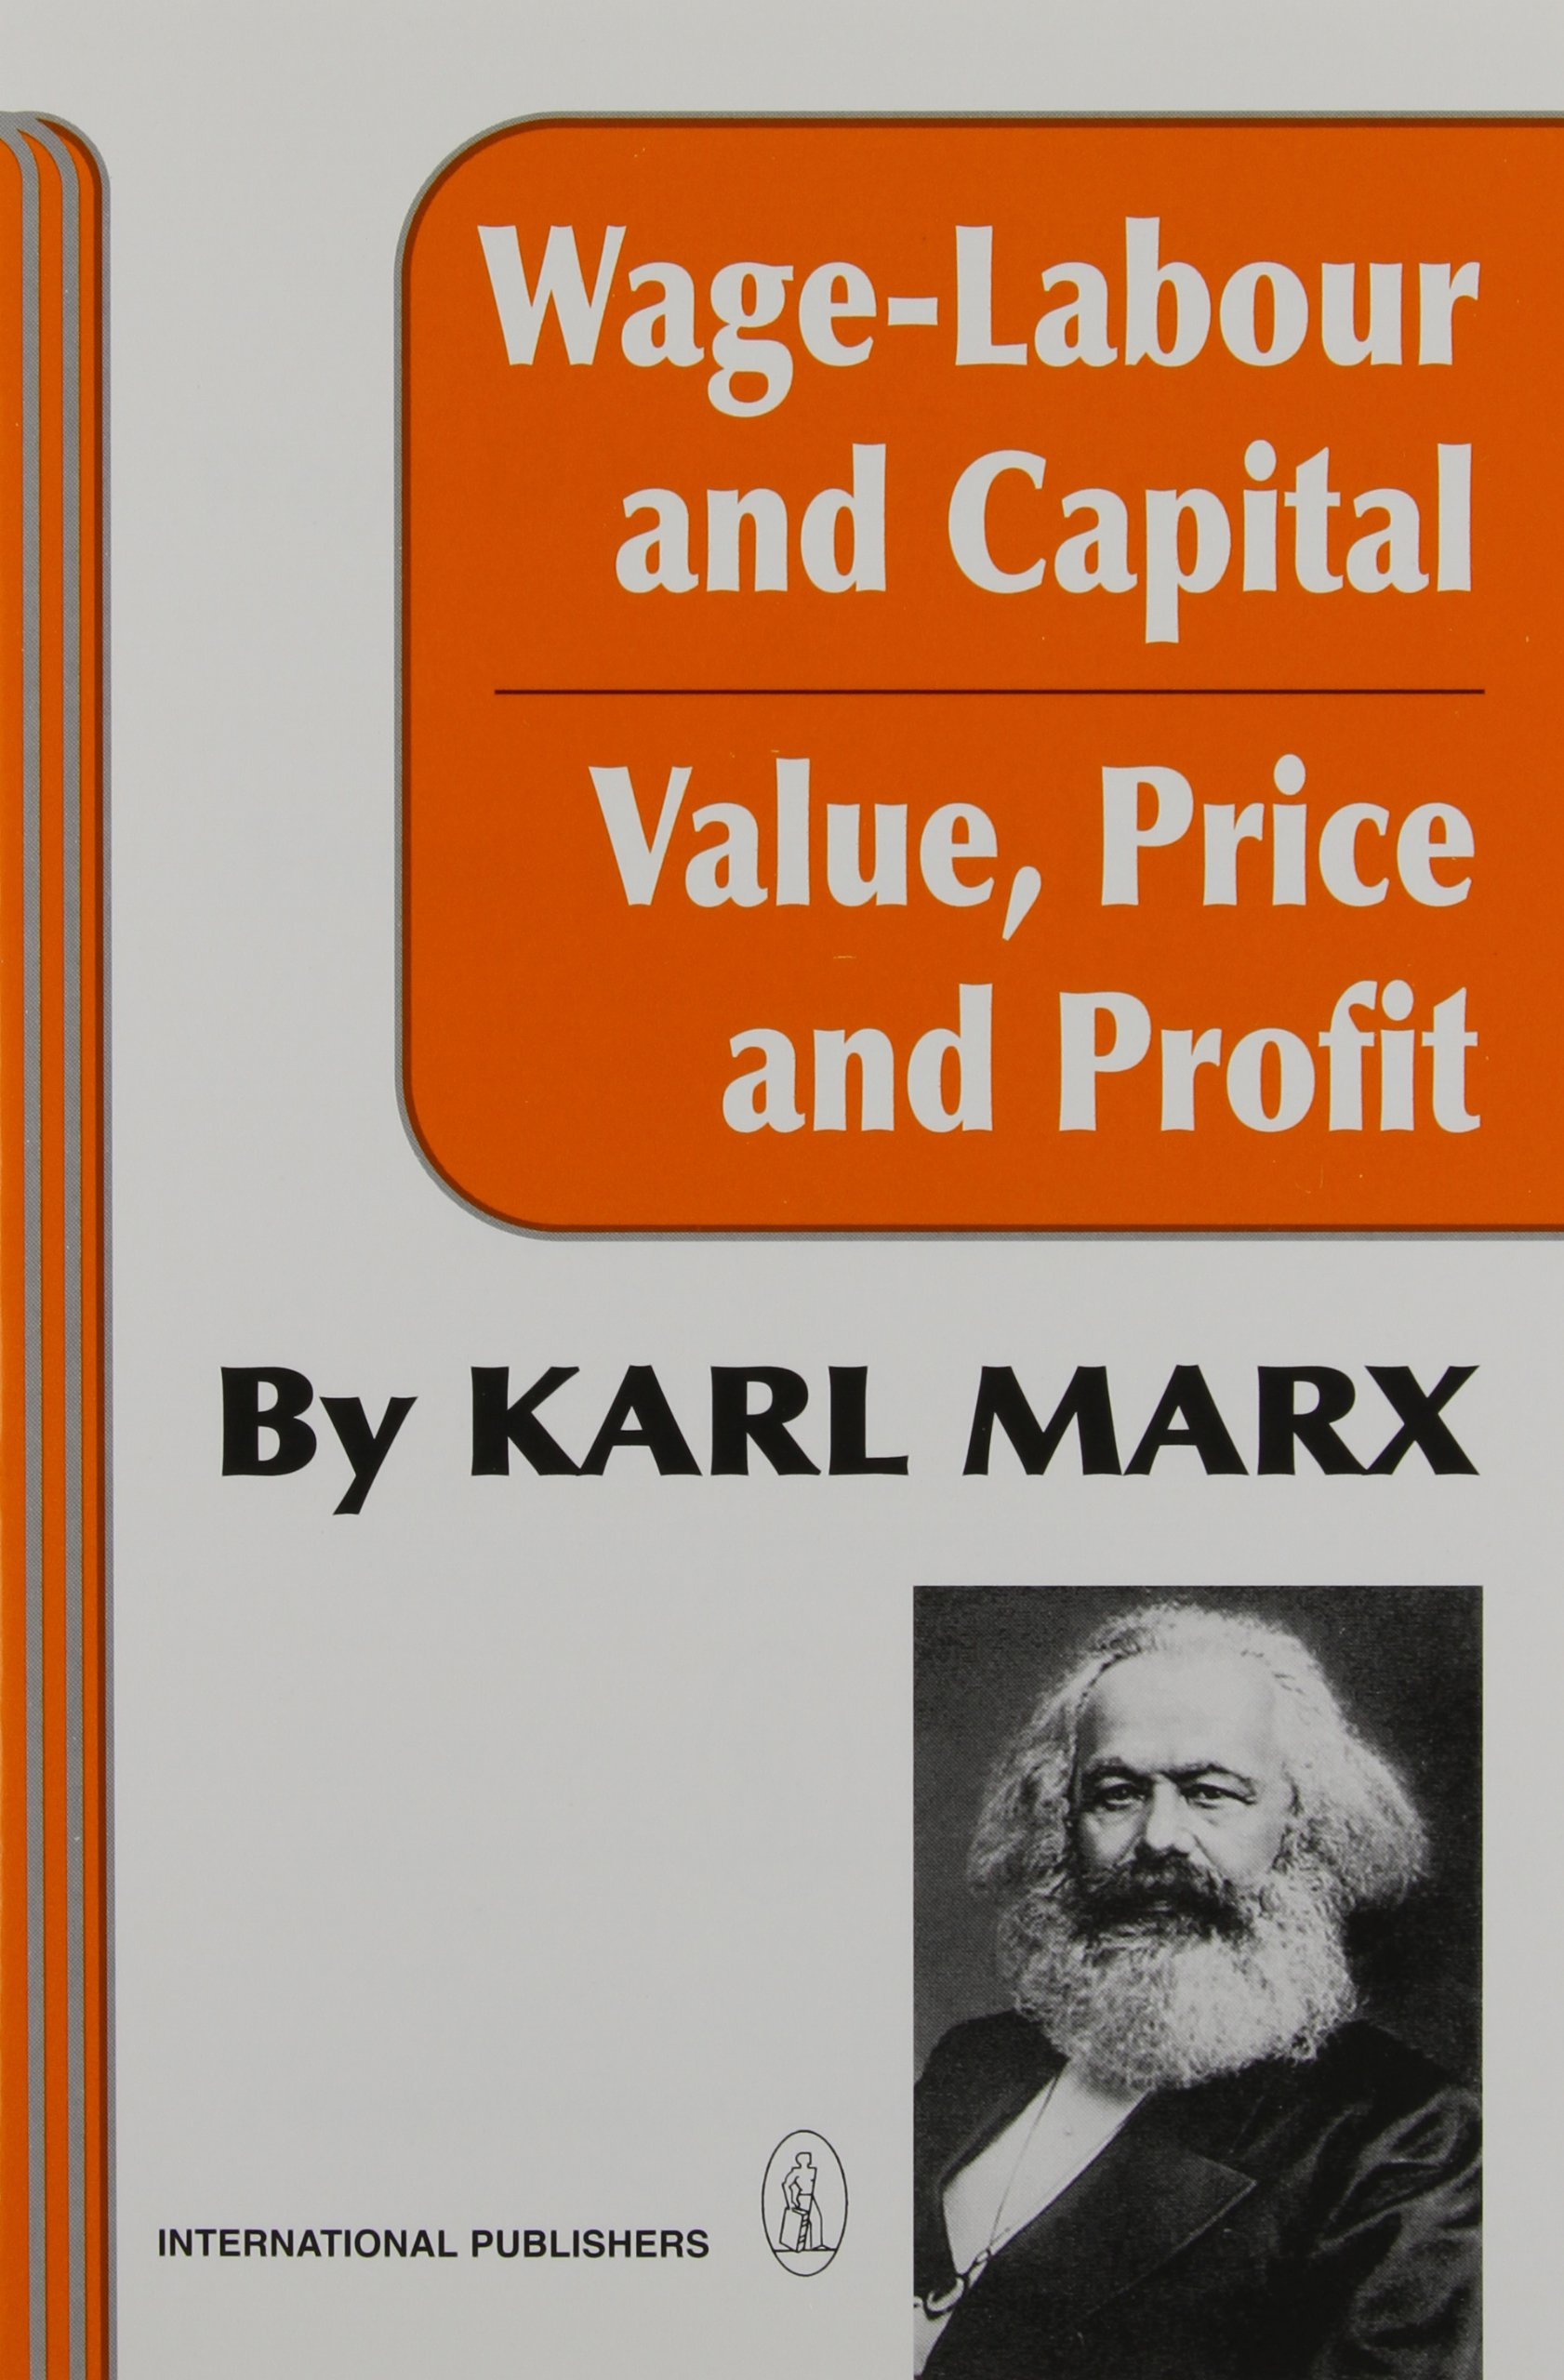 and Profit Price Wage-Labour and Capital and Value